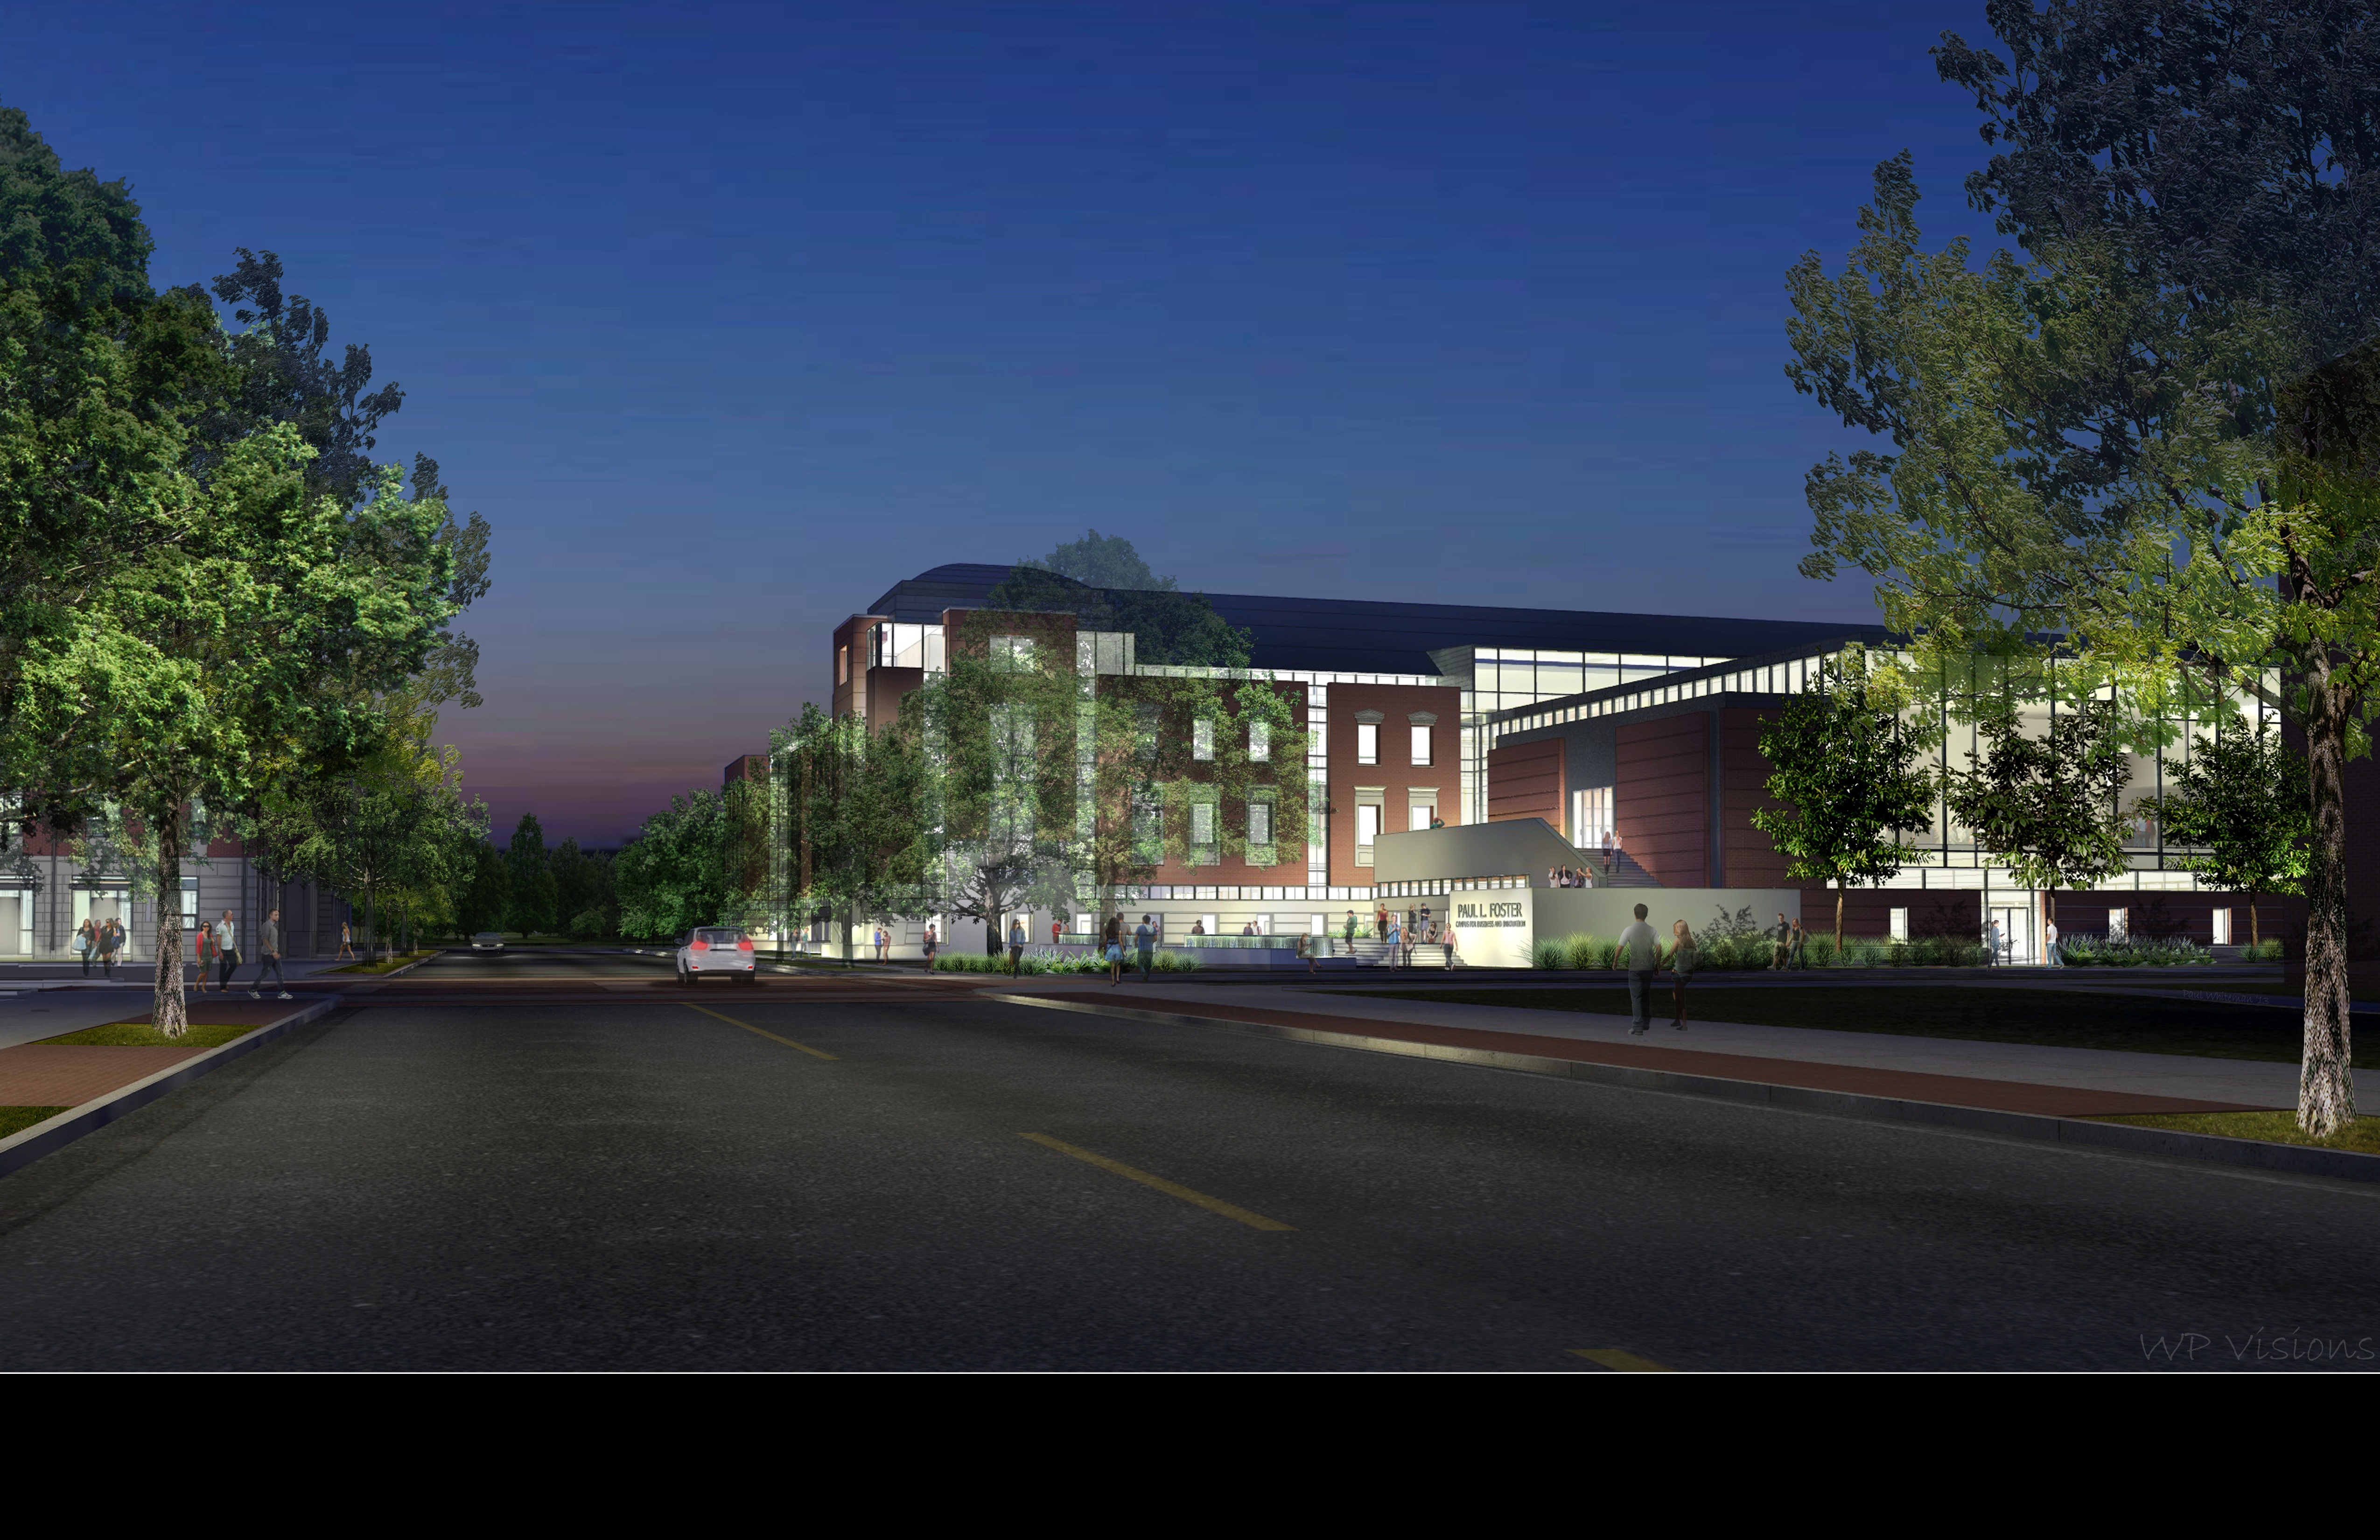 Design A Parking Garage Baylor Regents Authorize Feasibility Study And Fundraising